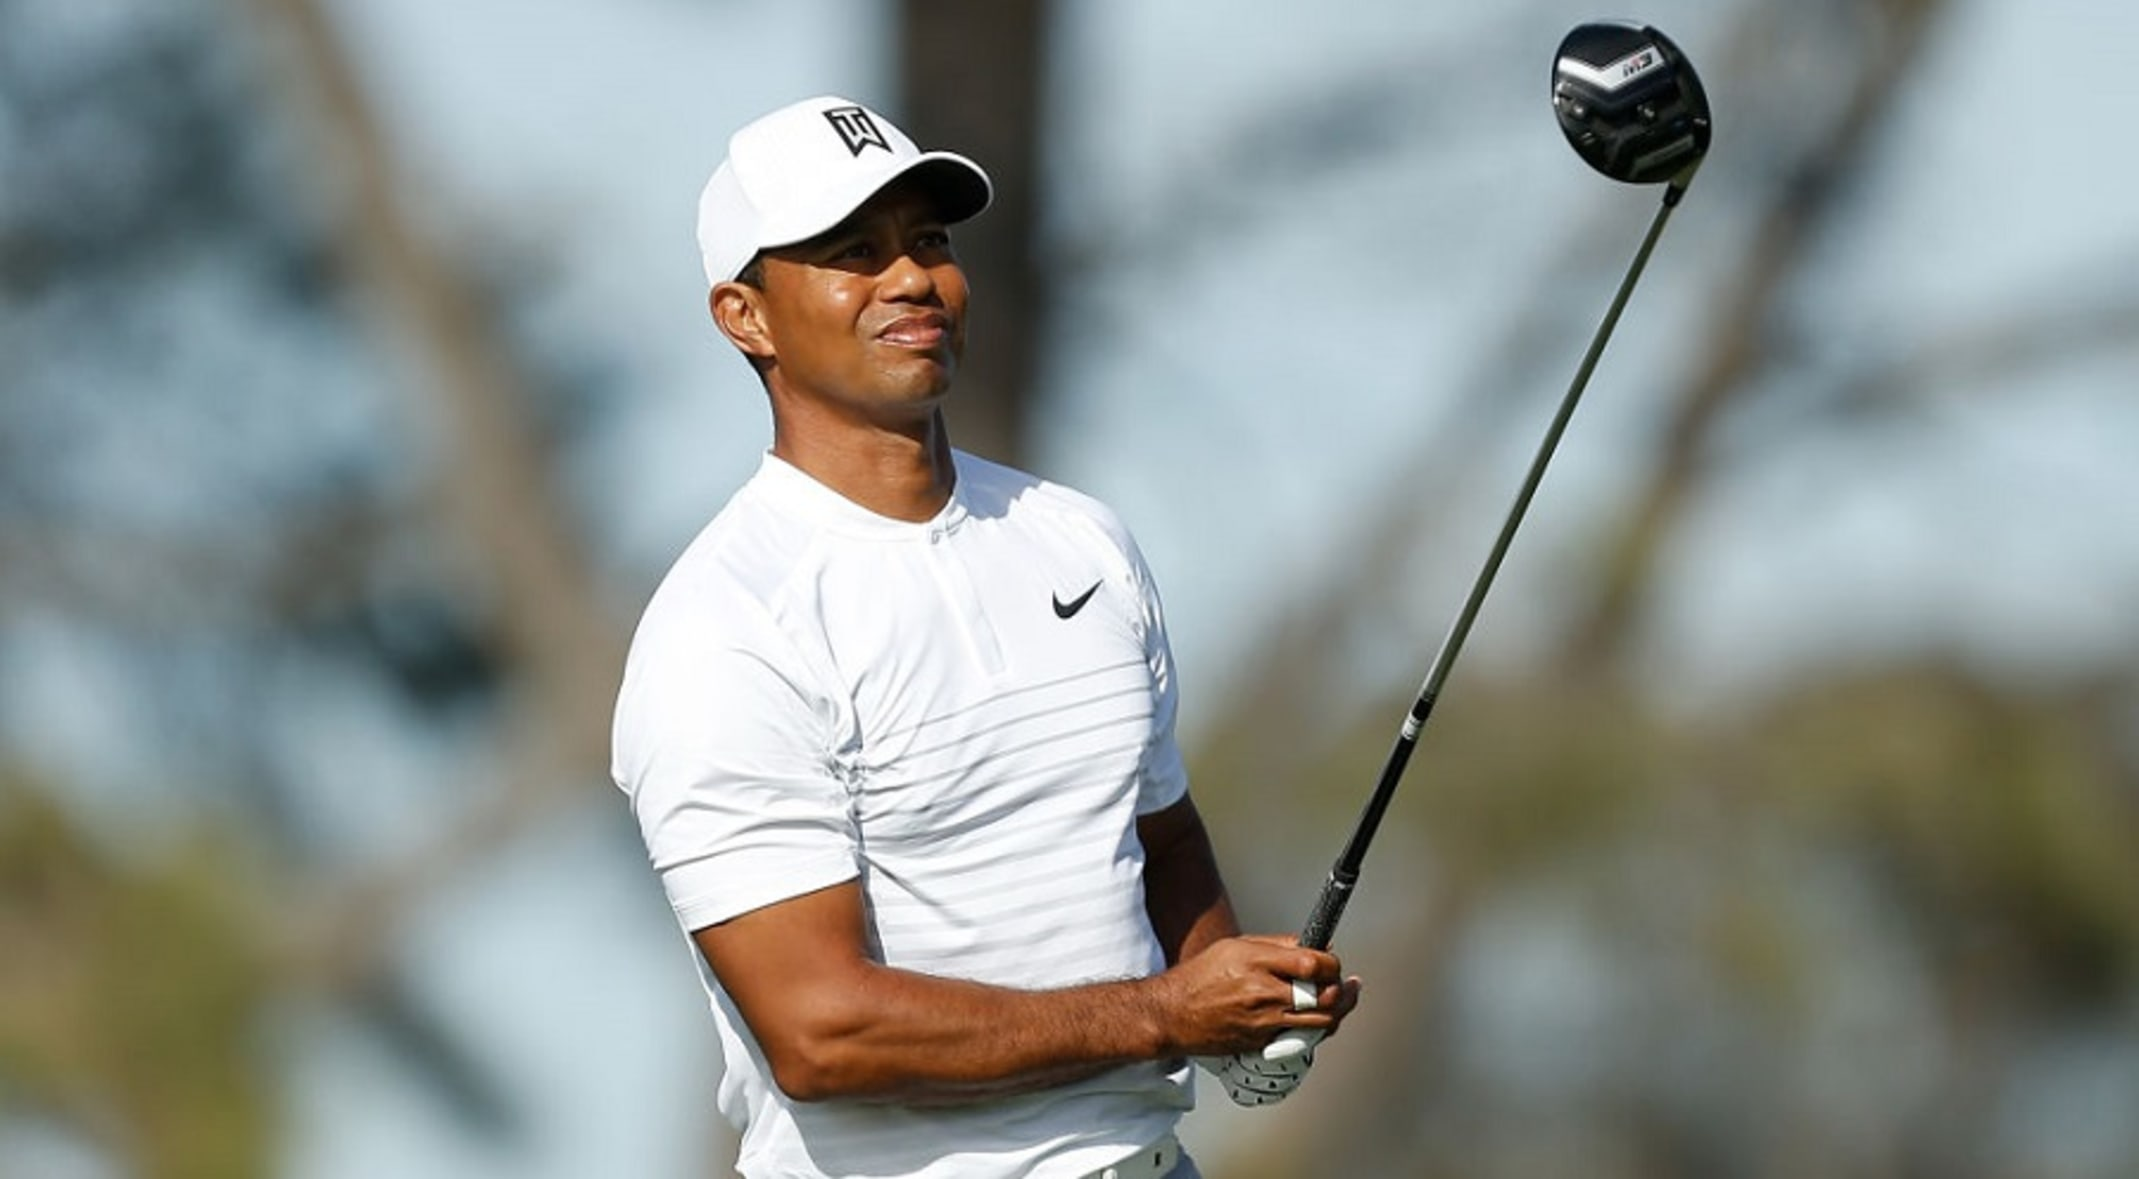 63c712c1 Tiger Woods' press conference before Genesis Open